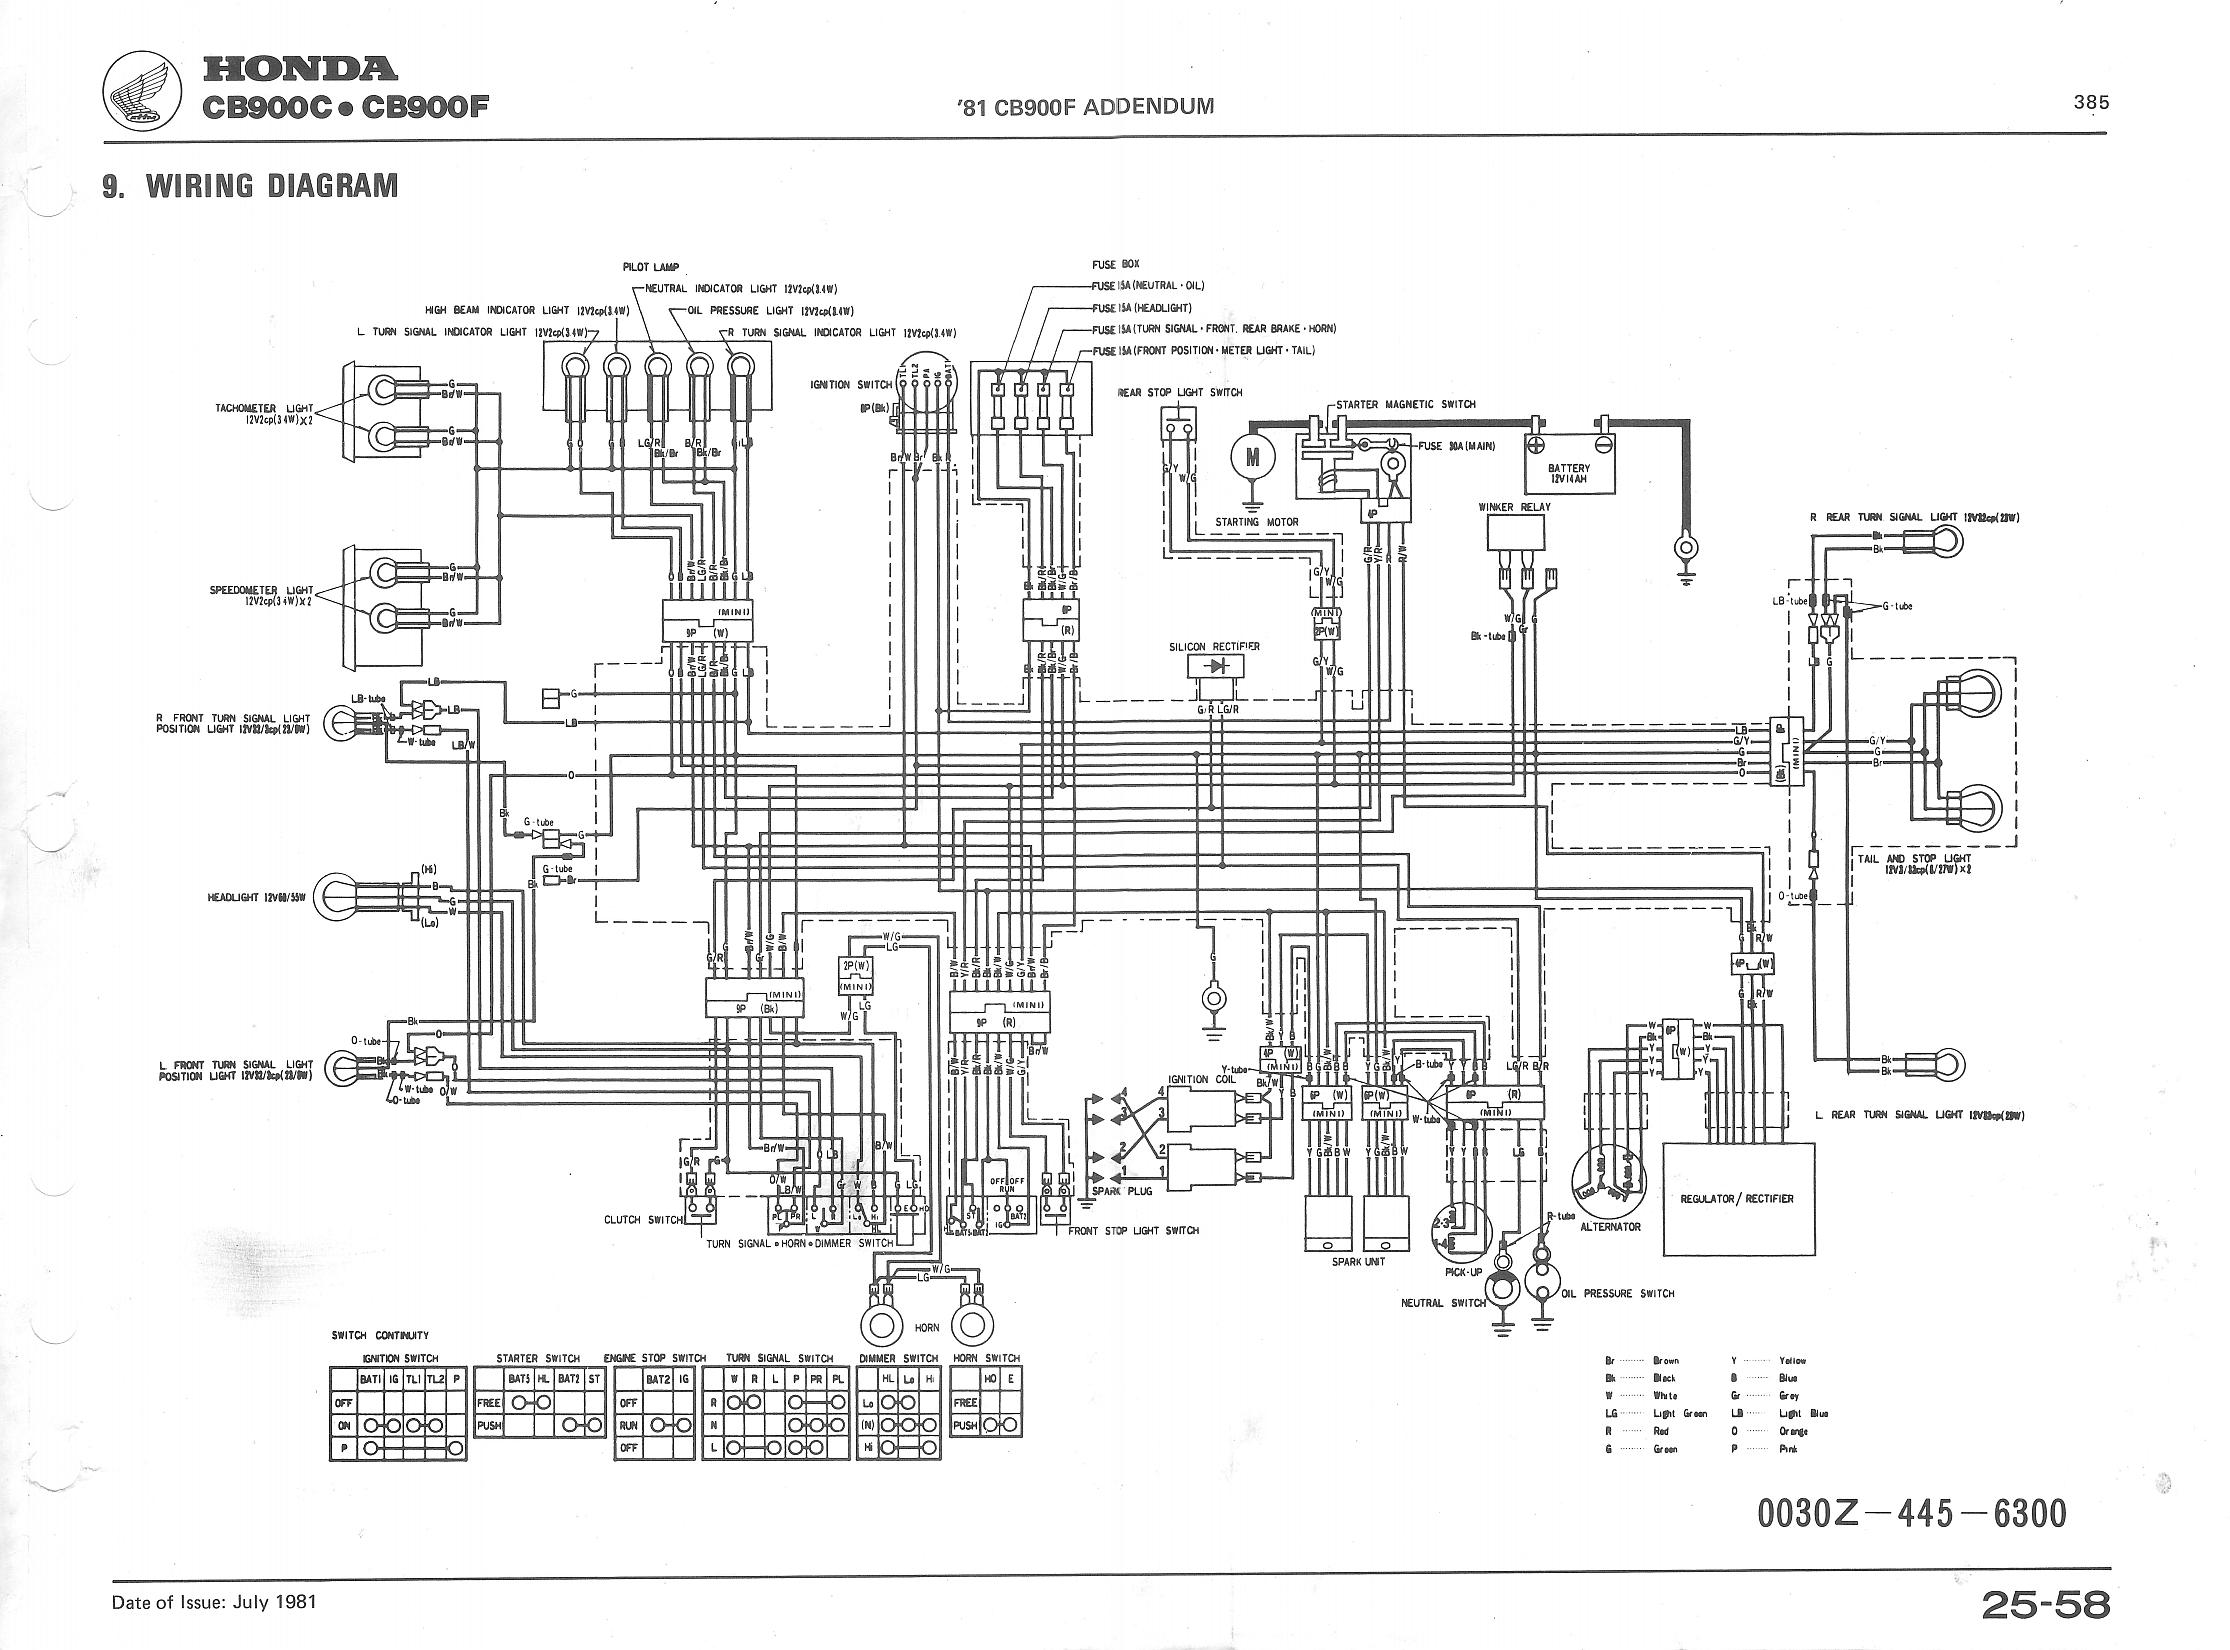 81 Honda Wiring Diagram Another Blog About 1981 Yamaha Tt500 Ignition Index Of Publicdocs Cb900c Manual